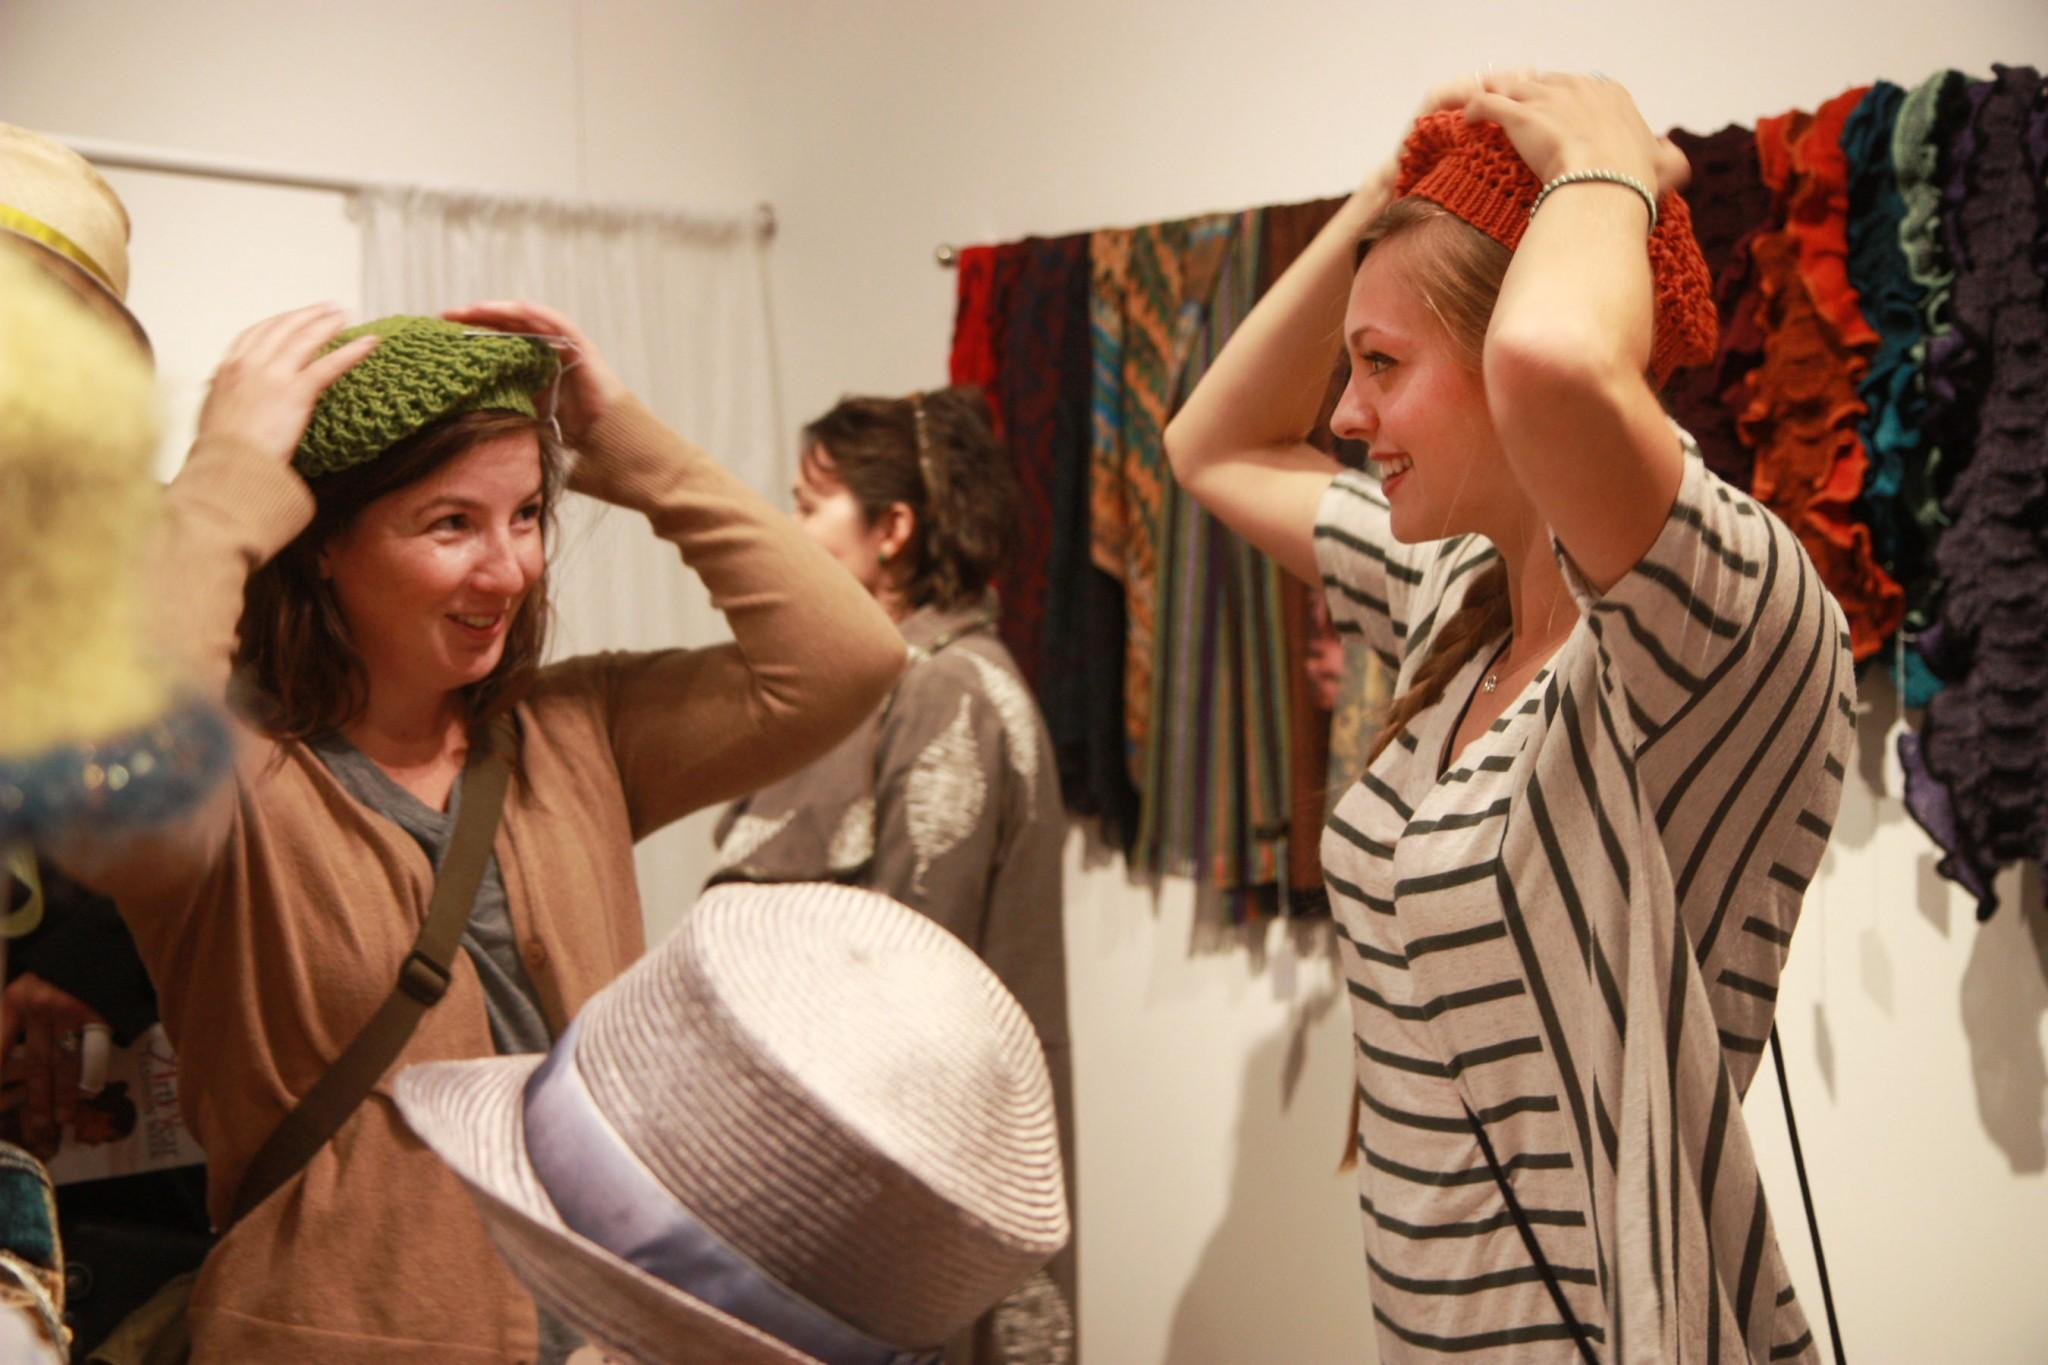 CSU art students, Leah Walker and Molly Wilson, try on hats made by local artists during the ArtWear Fashion show this past Friday. Walker helped set up for the event, held by the Lincoln Center, and was pleased to have something different and fun for her and a friend to do within the Fort Collins community.